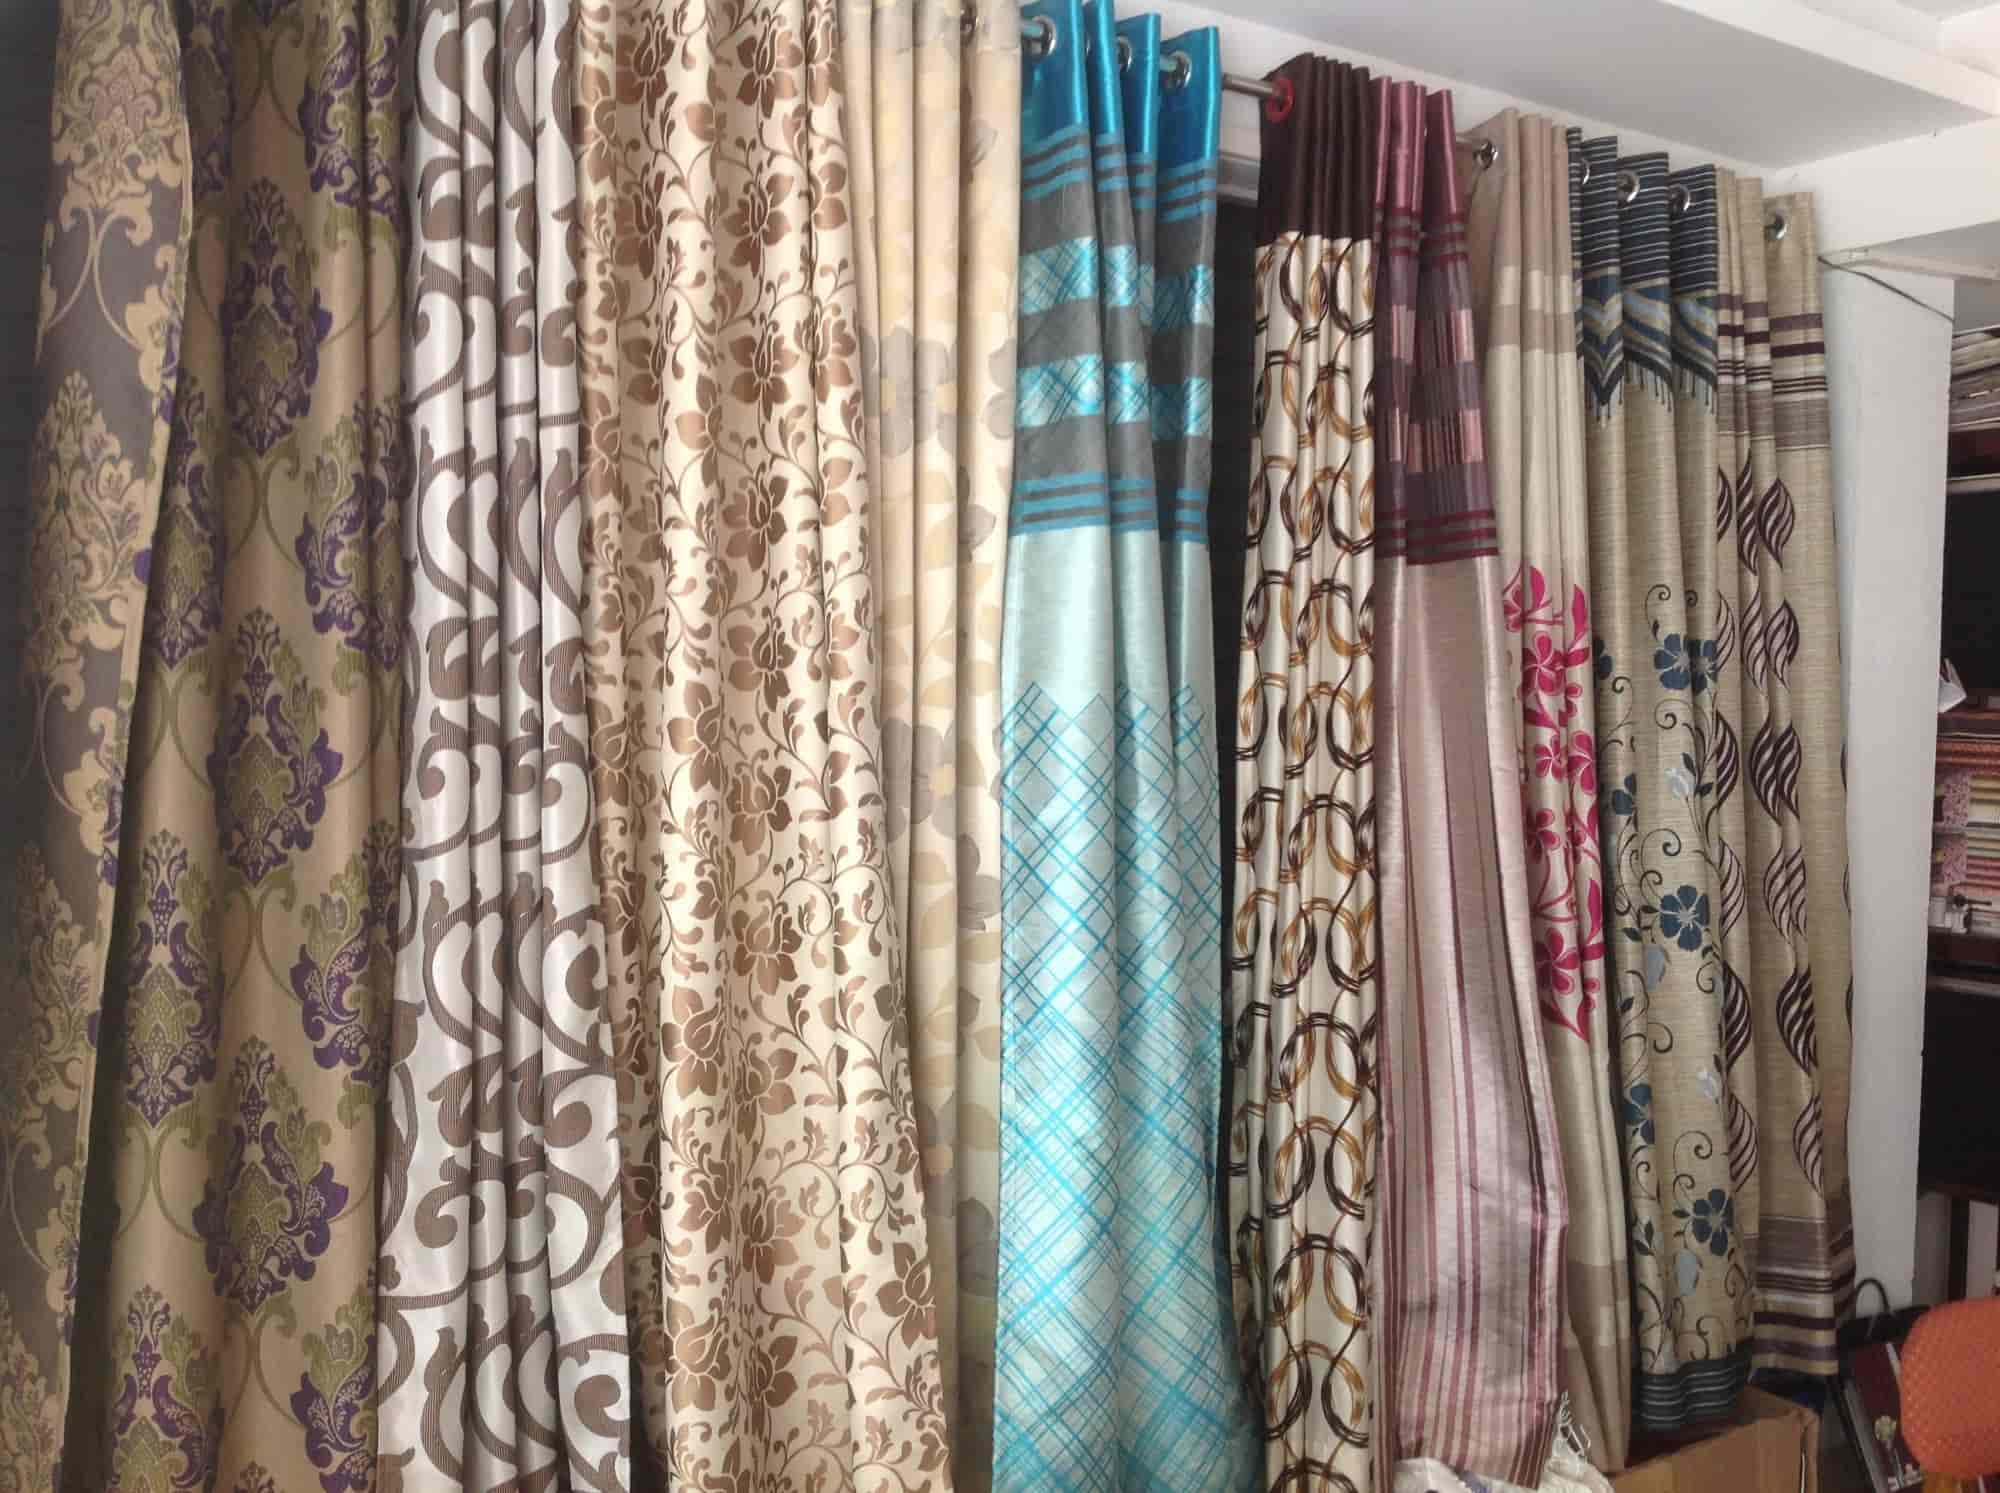 design curtains photos palakkad pictures images gallery justdial